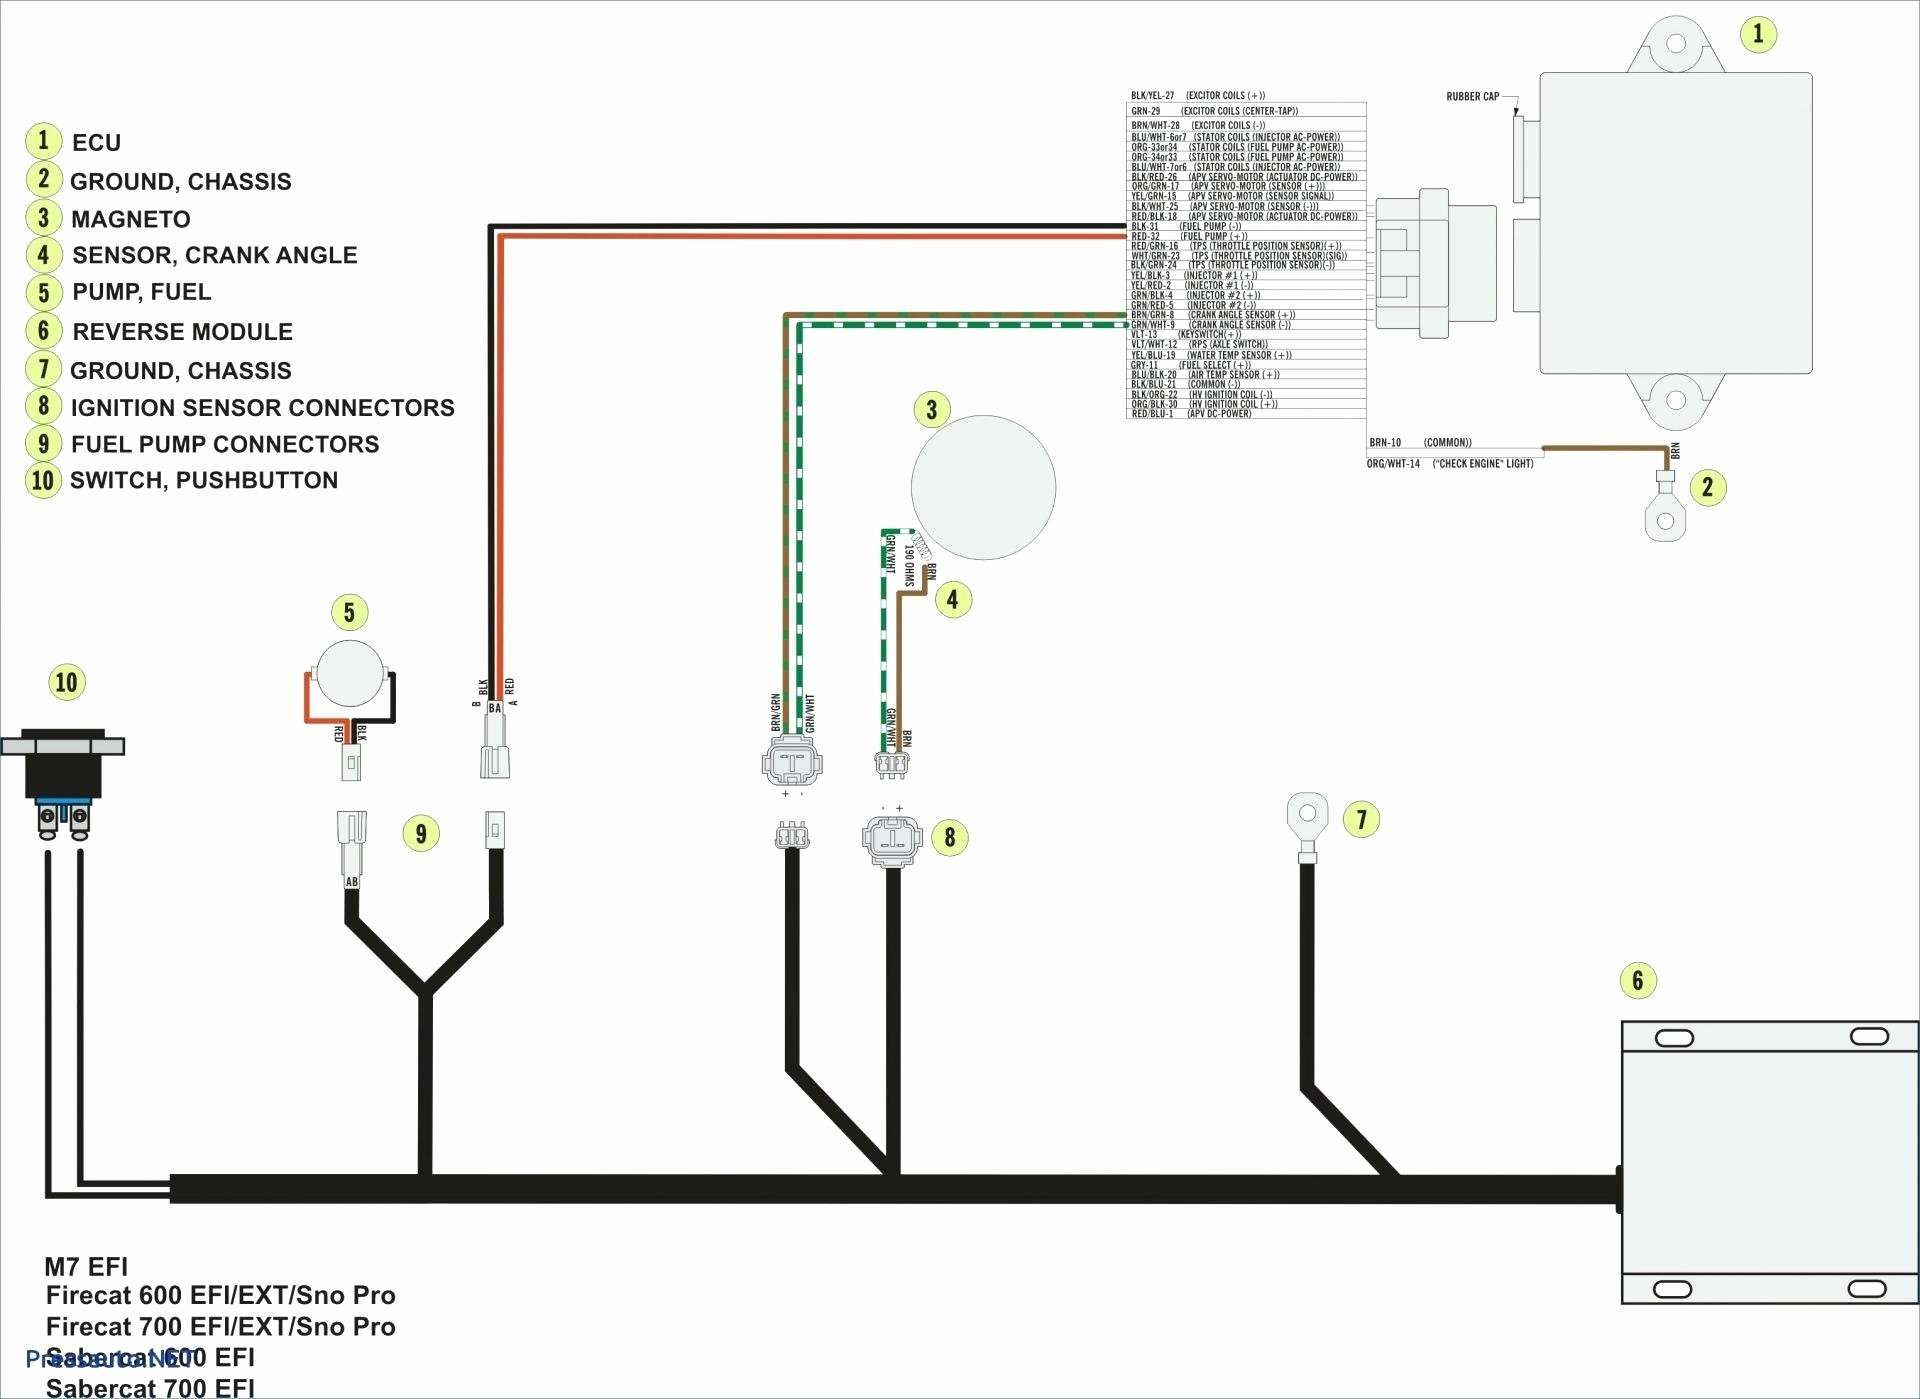 Wiring Diagram Bathroom Lovely Wiring Diagram Bathroom Bathroom Fan Light Wiring Diagram Mik Bathroom Heater Fan Amazing Bathrooms Bathroom Exhaust Fan Light